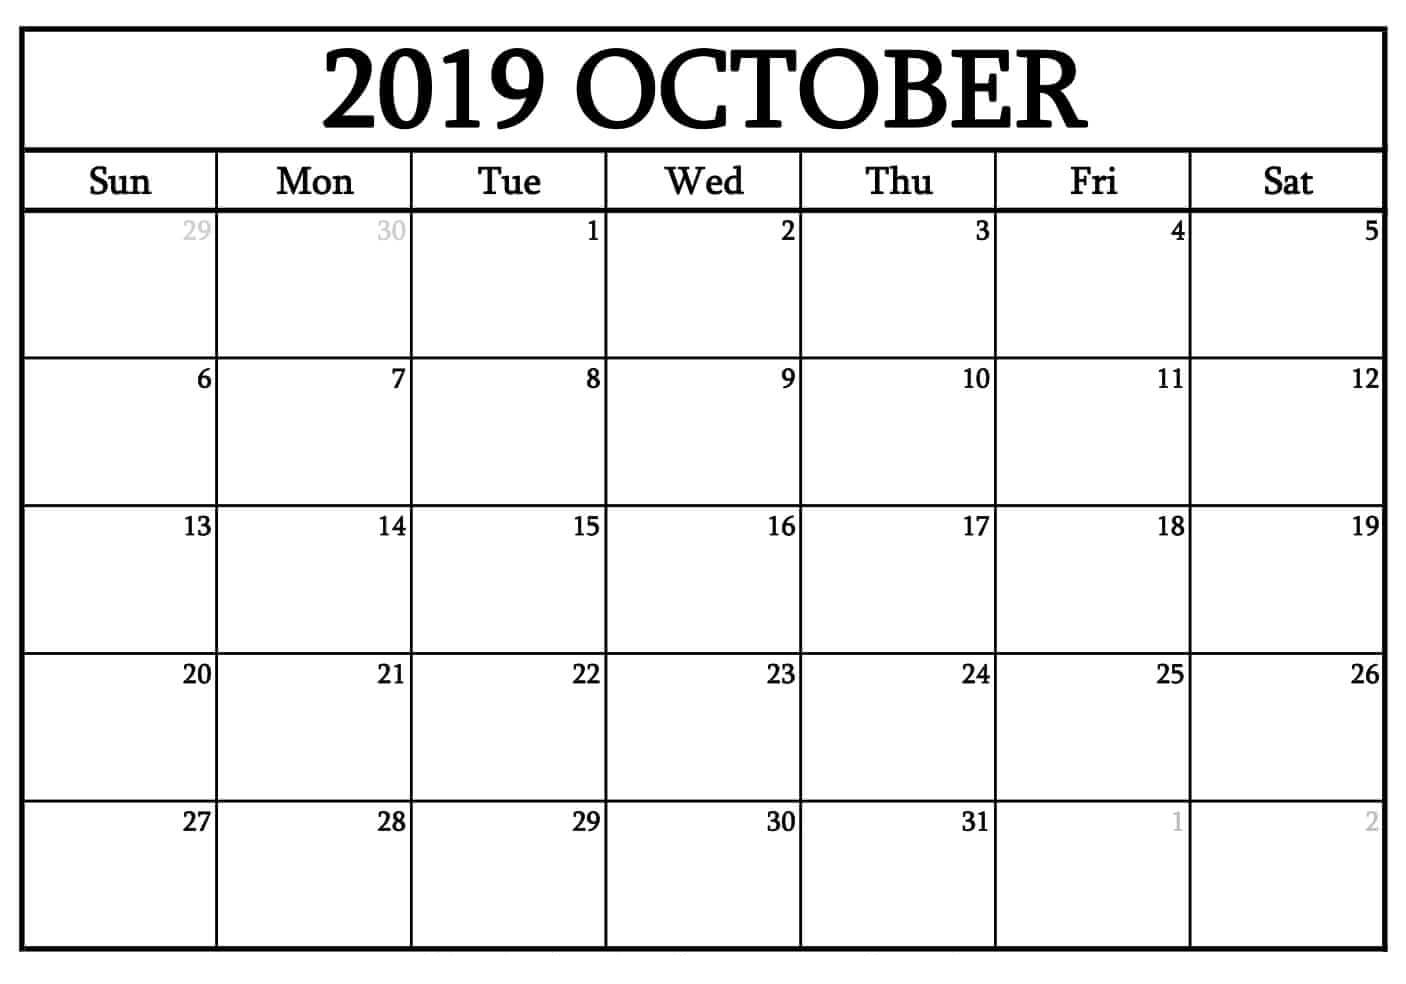 October 2019 Printable Calendar Word, Pdfmonth - Latest within Calendar 2019 October To December